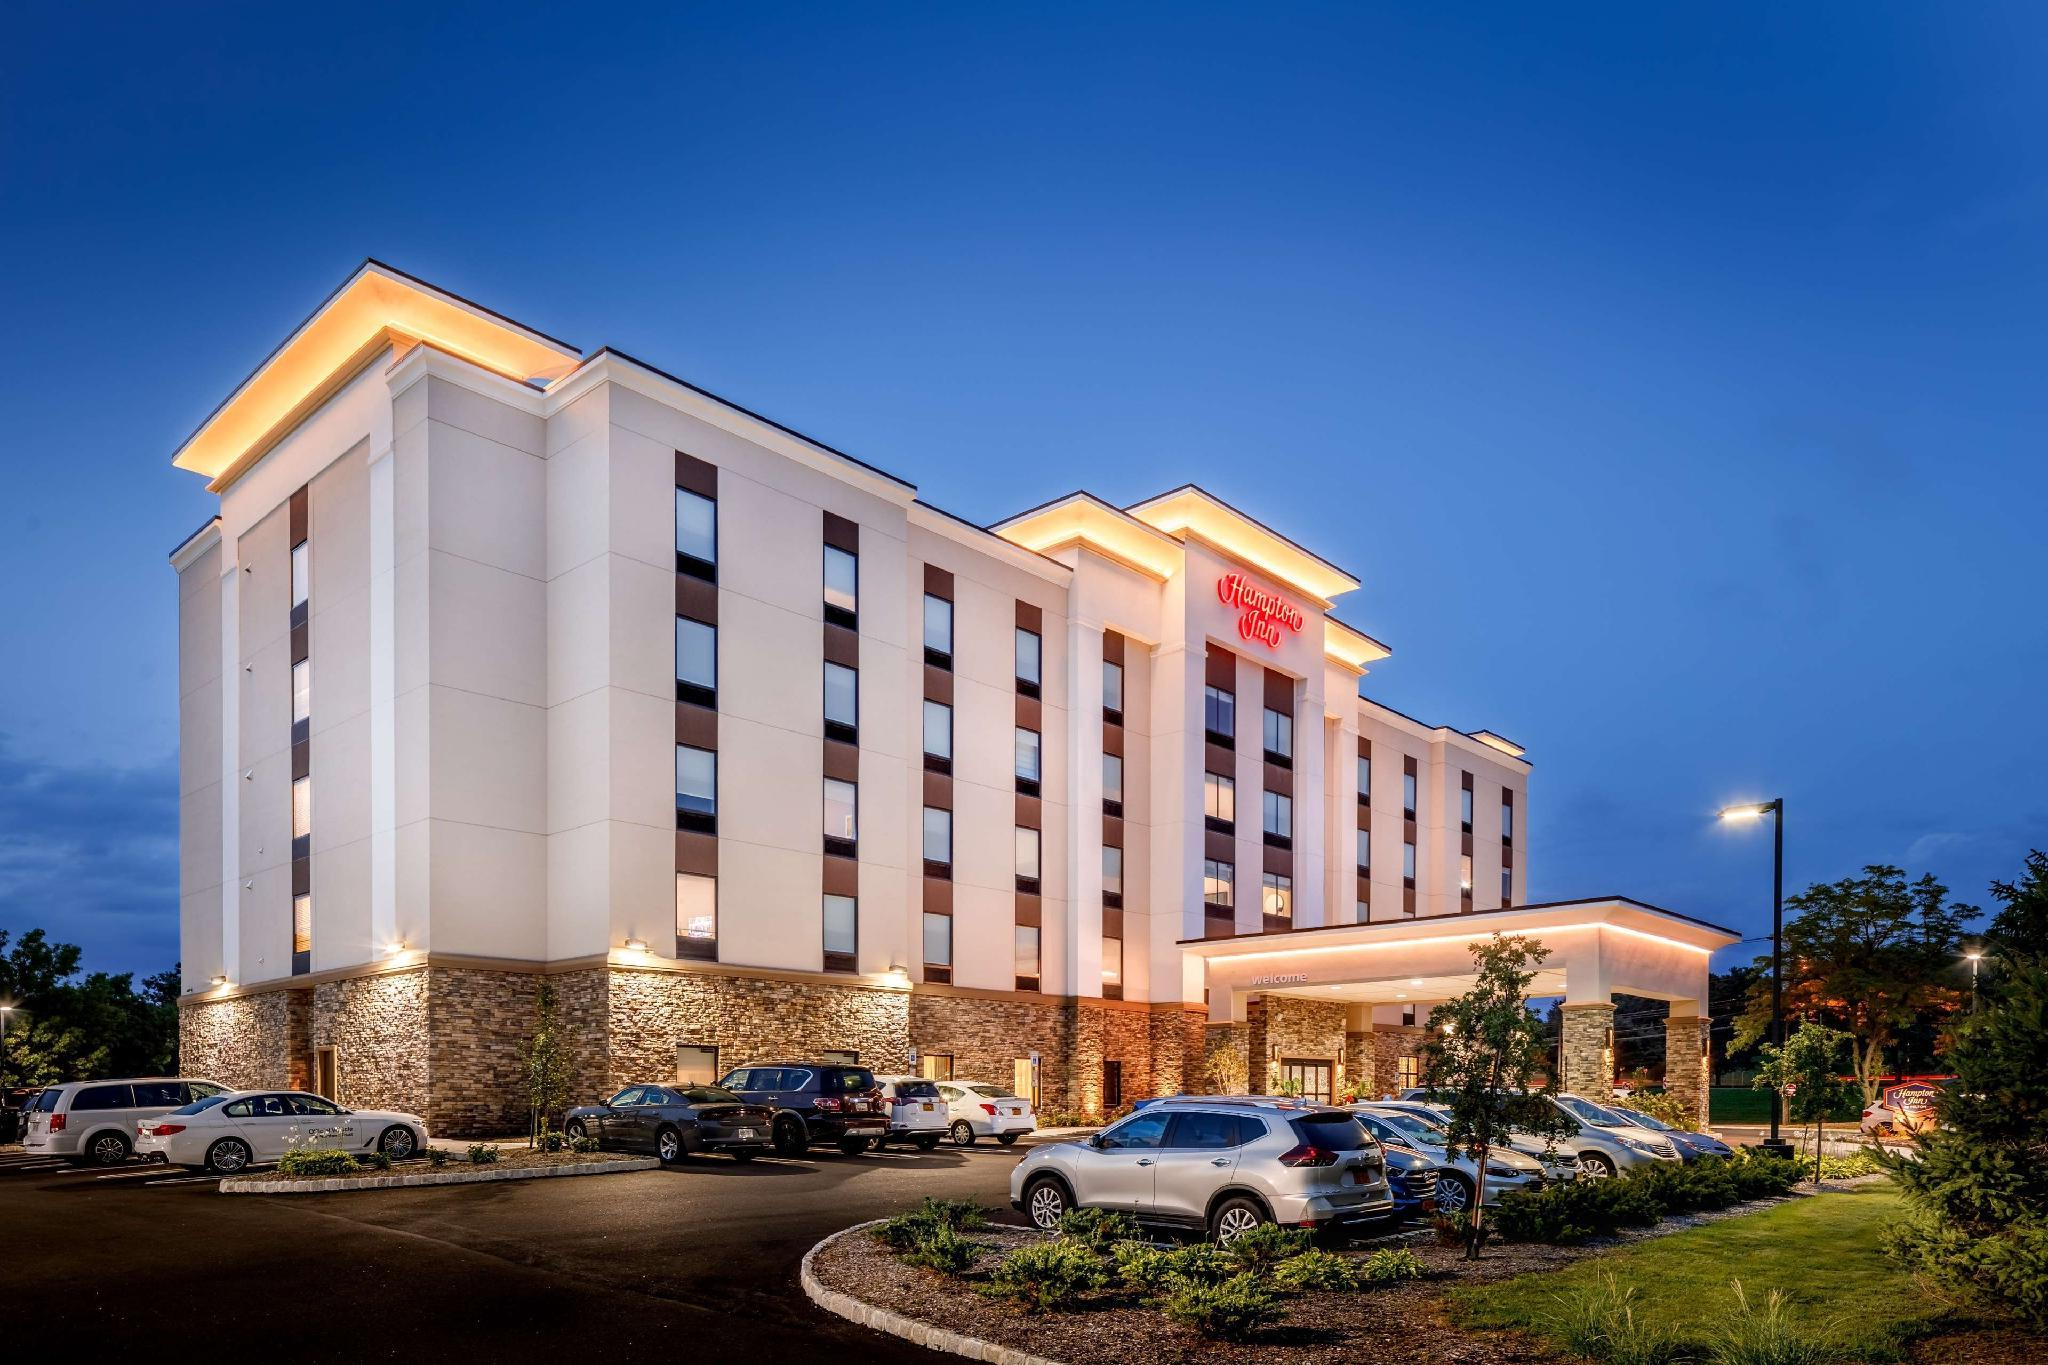 Hampton Inn Paramus Paramus Nj 2019 Reviews Pictures